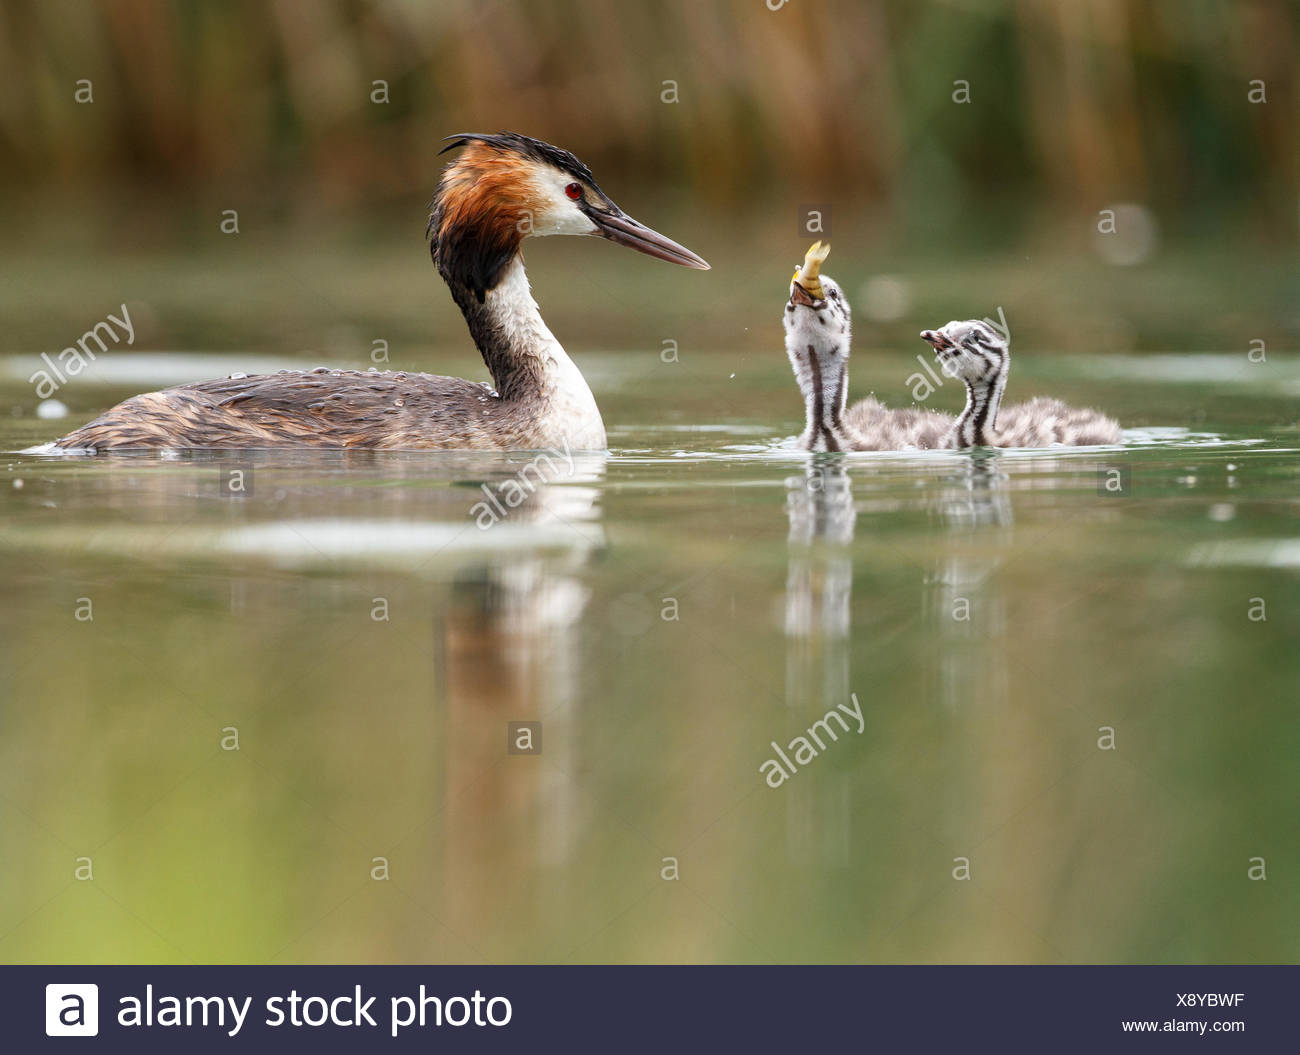 Great crested grebes (Podiceps cristatus) with young birds in the lake, feeding, Baden-Württemberg, Germany - Stock Image